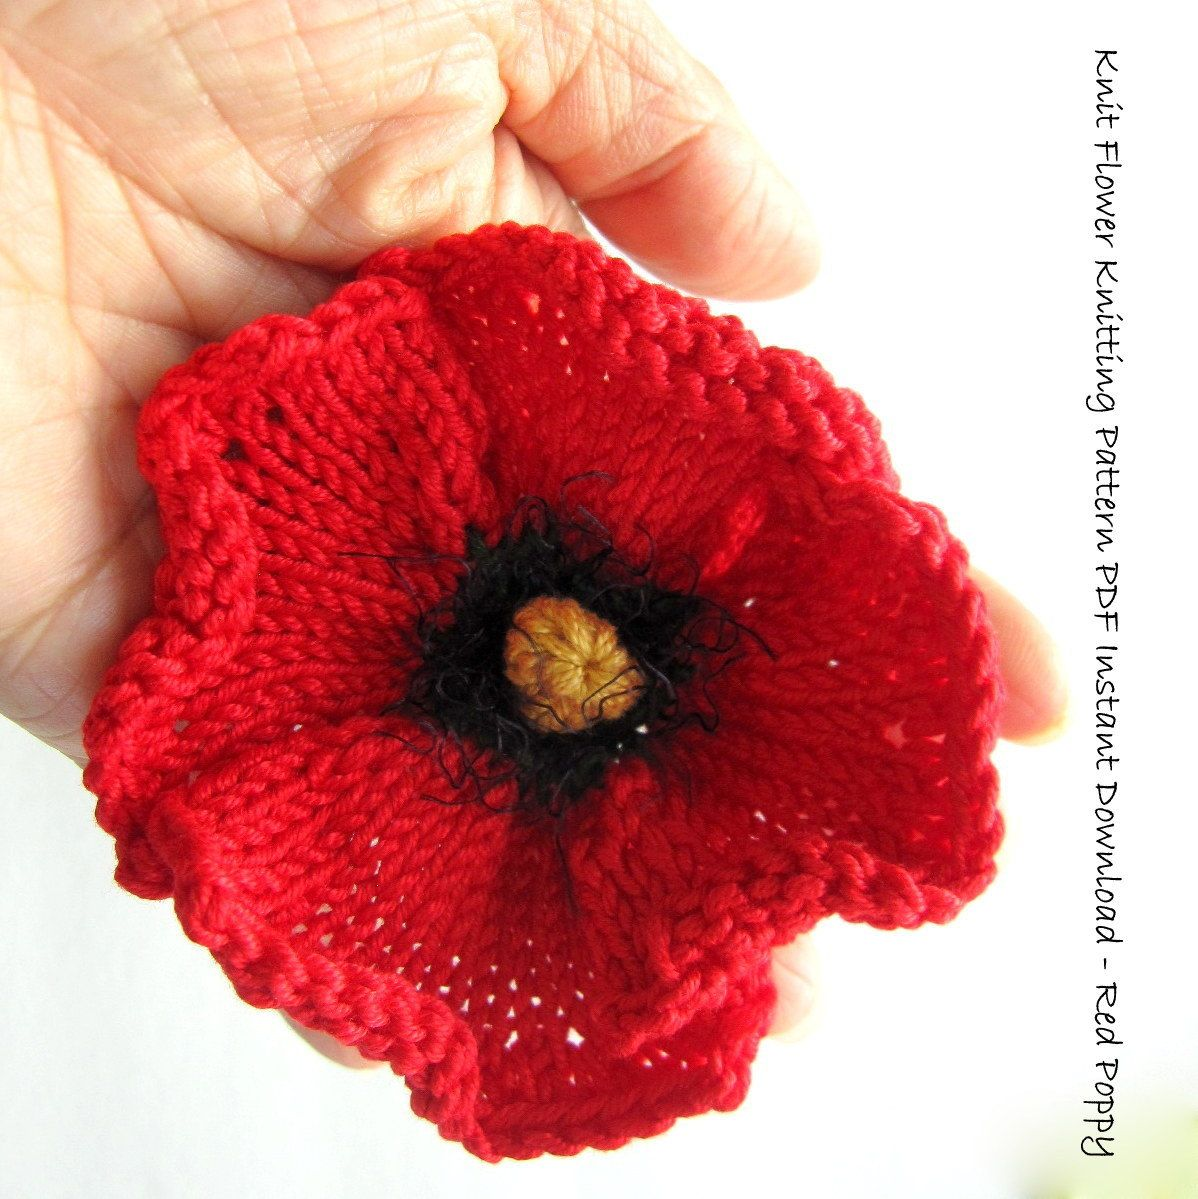 Knit Flower Instant Download PDF Pattern - Poppy Flower | Knit ...